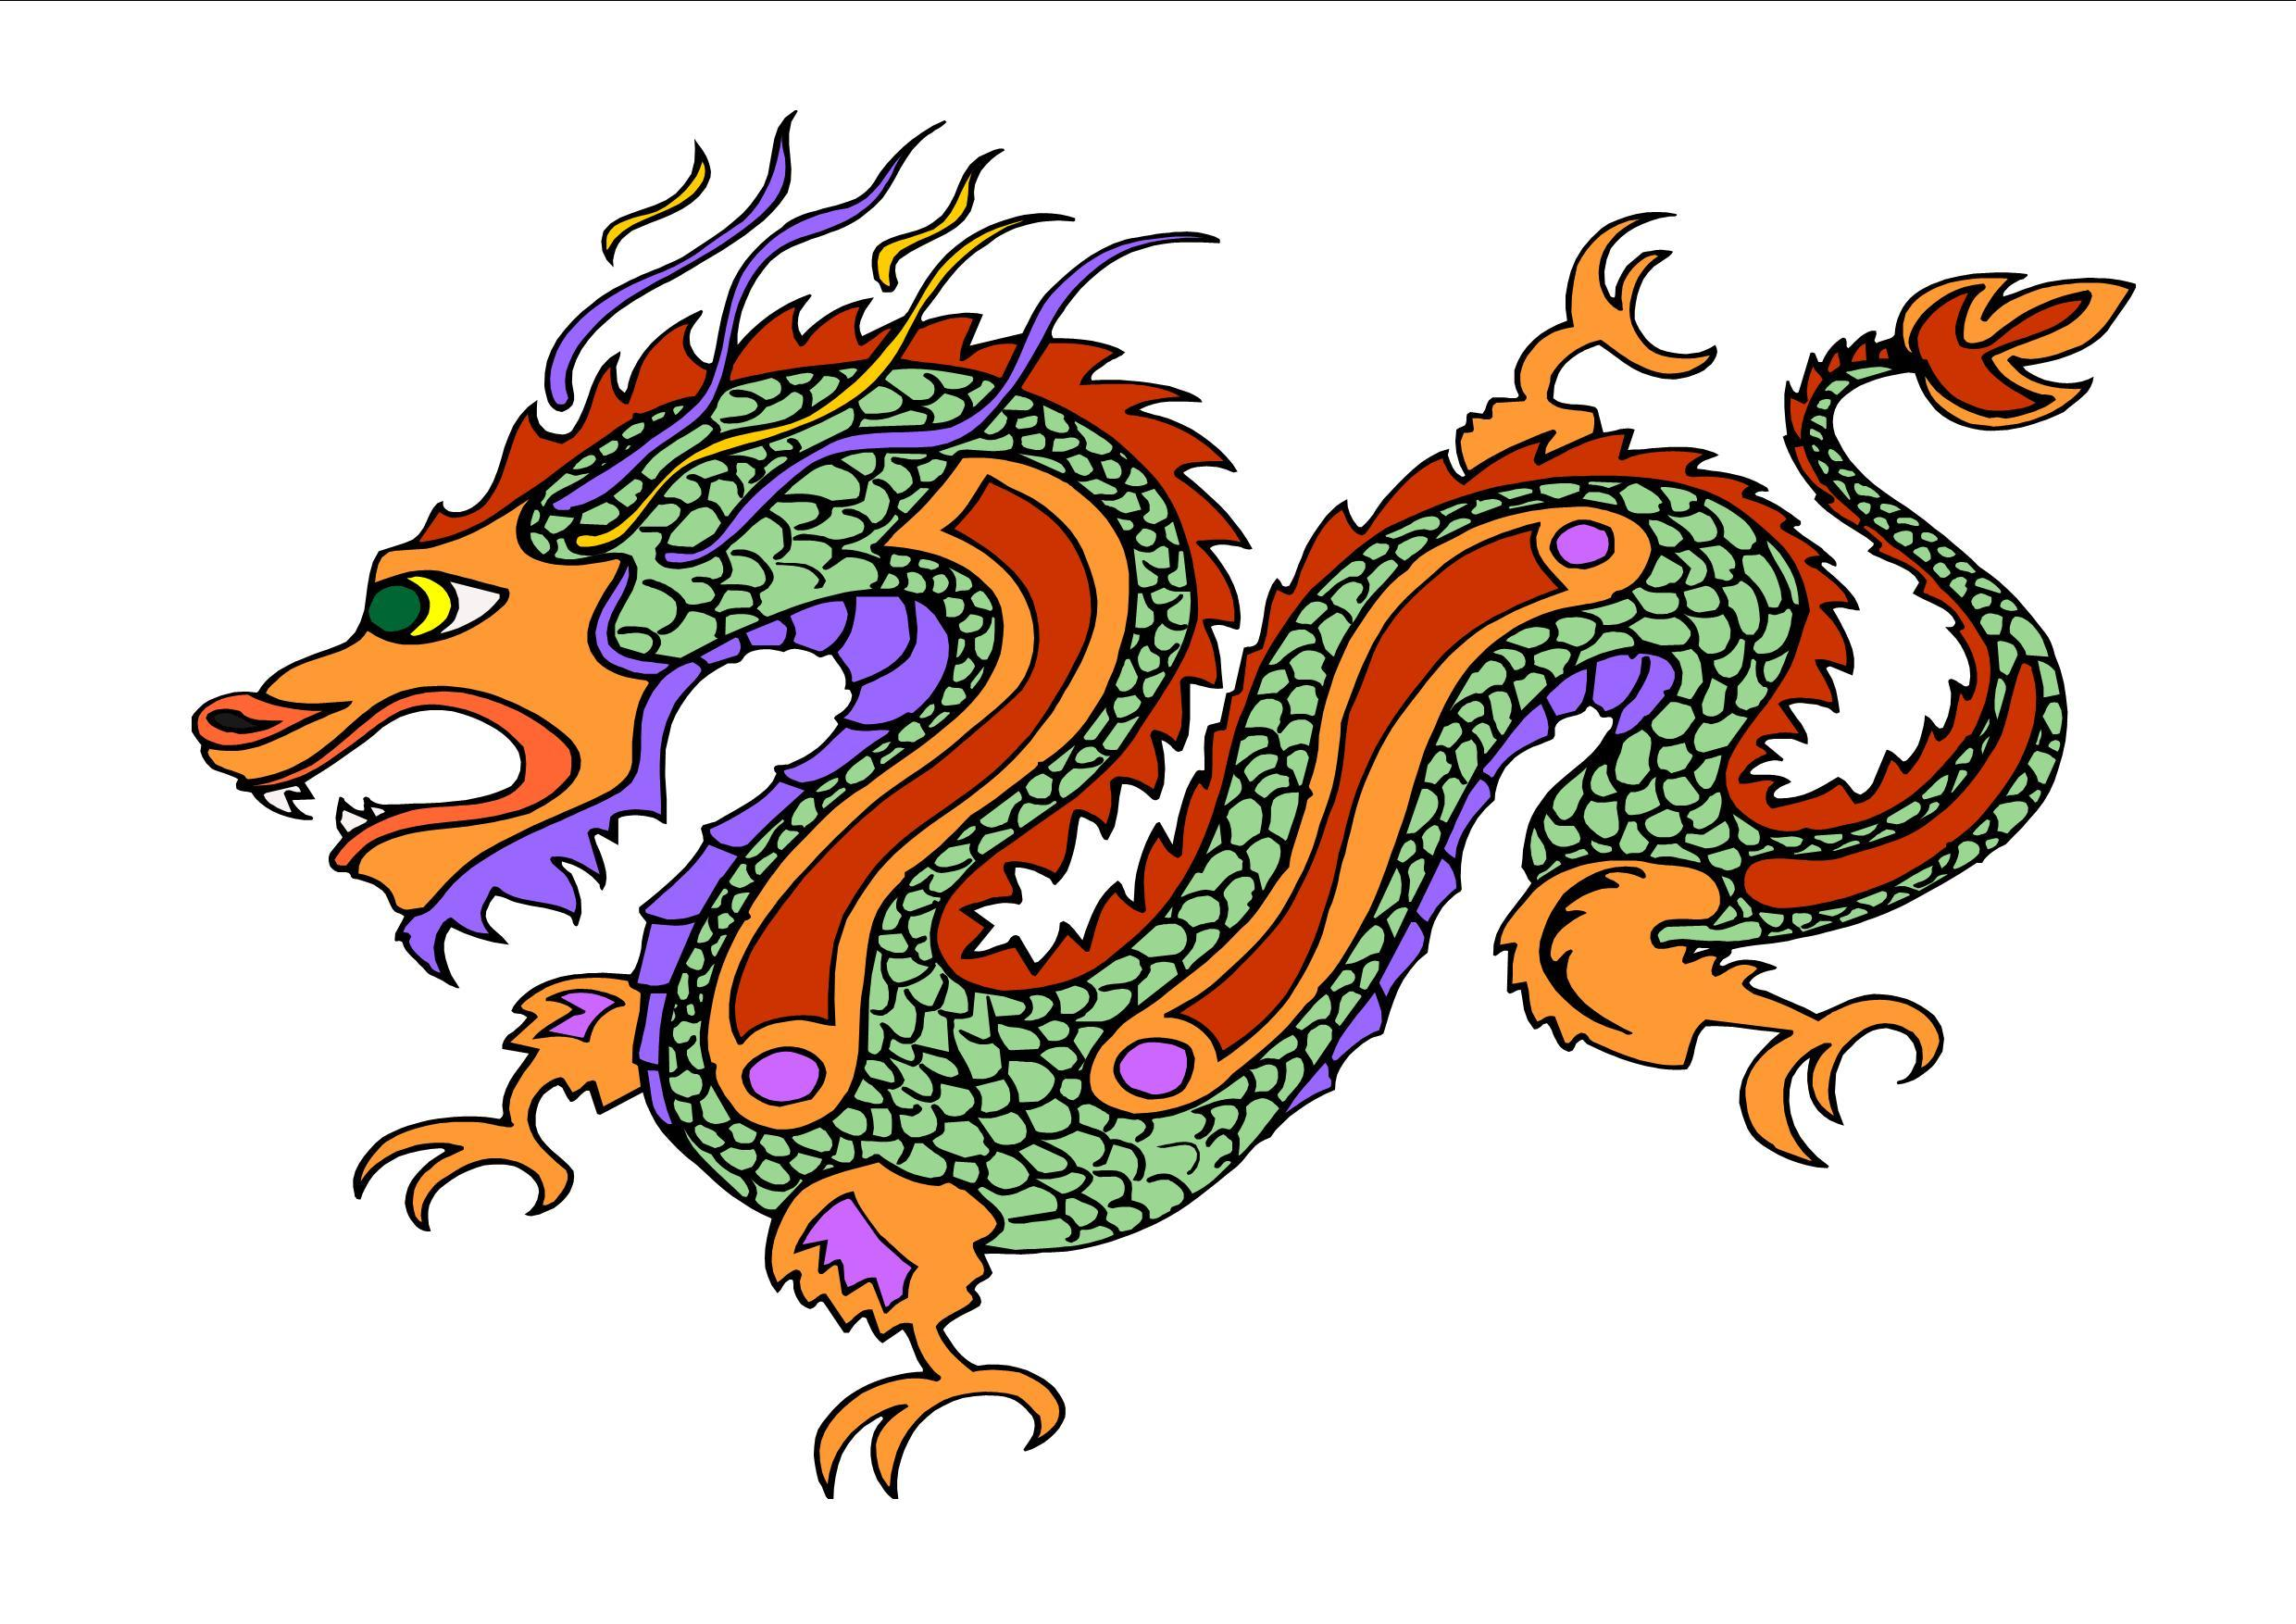 Chinese dragon clipart for kids image free library Chinese dragon clipart for kids 5 » Clipart Portal image free library